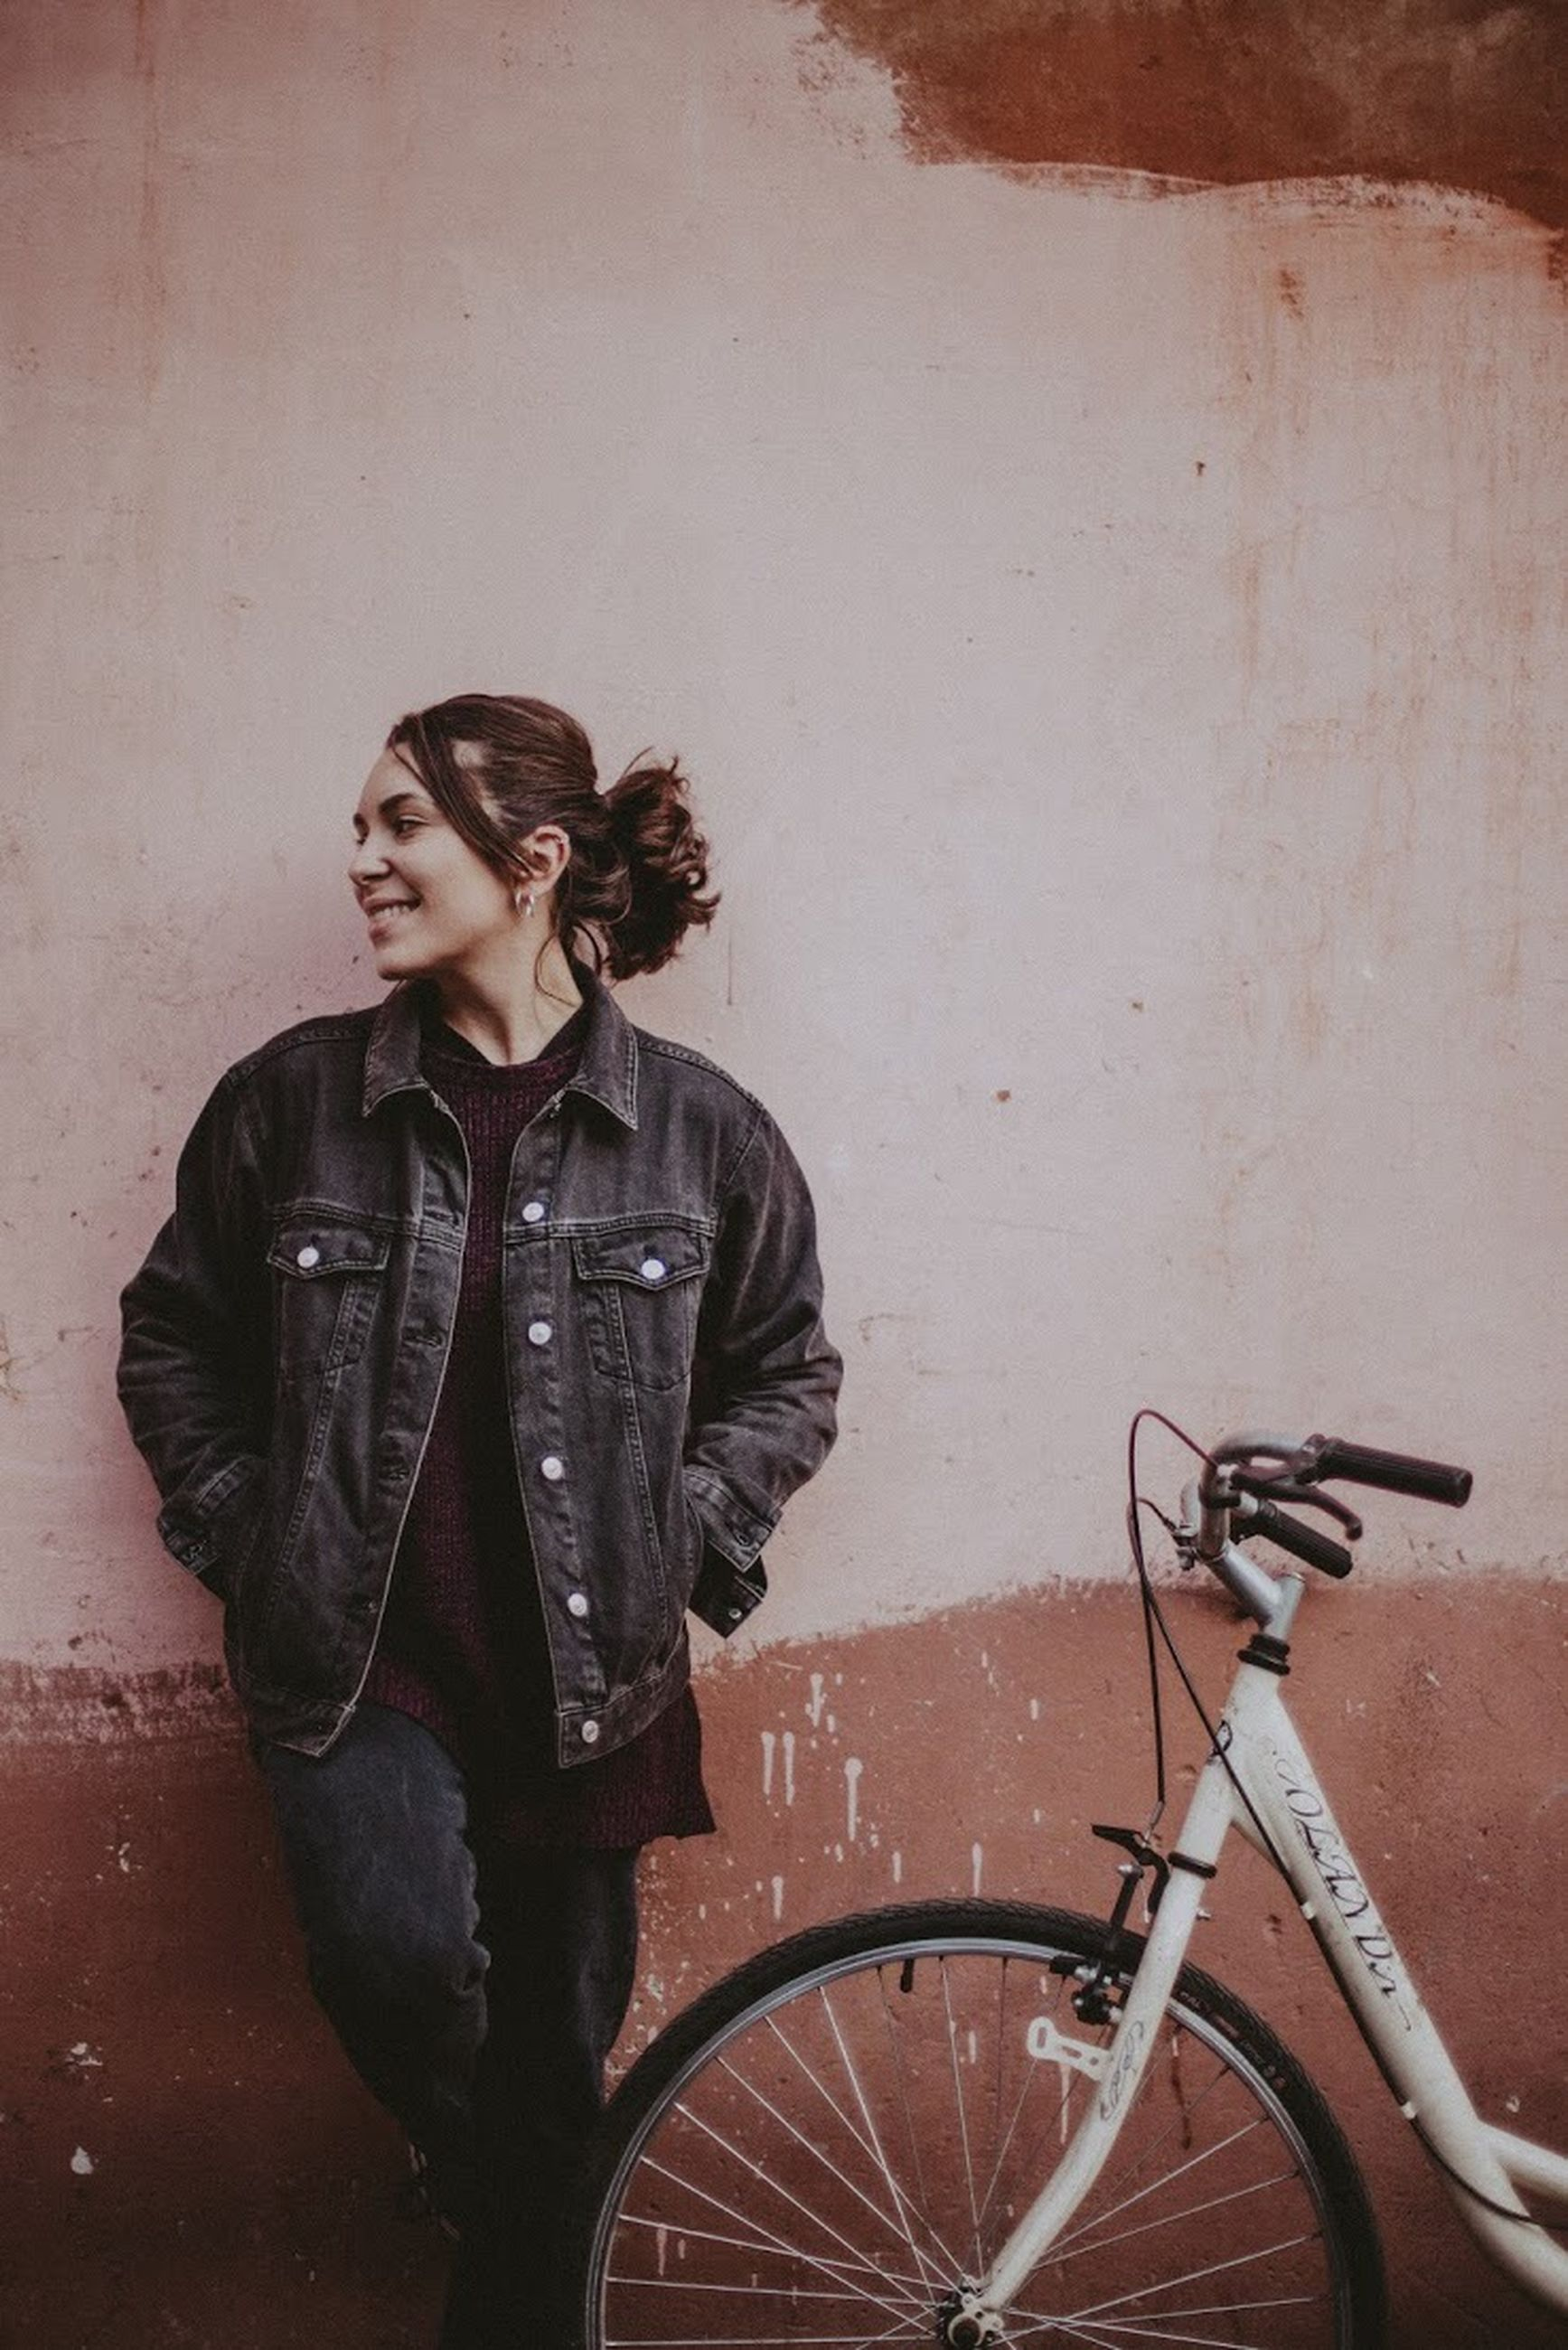 one person, young adult, wall - building feature, bicycle, casual clothing, young women, real people, three quarter length, leisure activity, standing, transportation, lifestyles, front view, jacket, looking away, beauty, clothing, beautiful woman, hairstyle, leather jacket, leather, contemplation